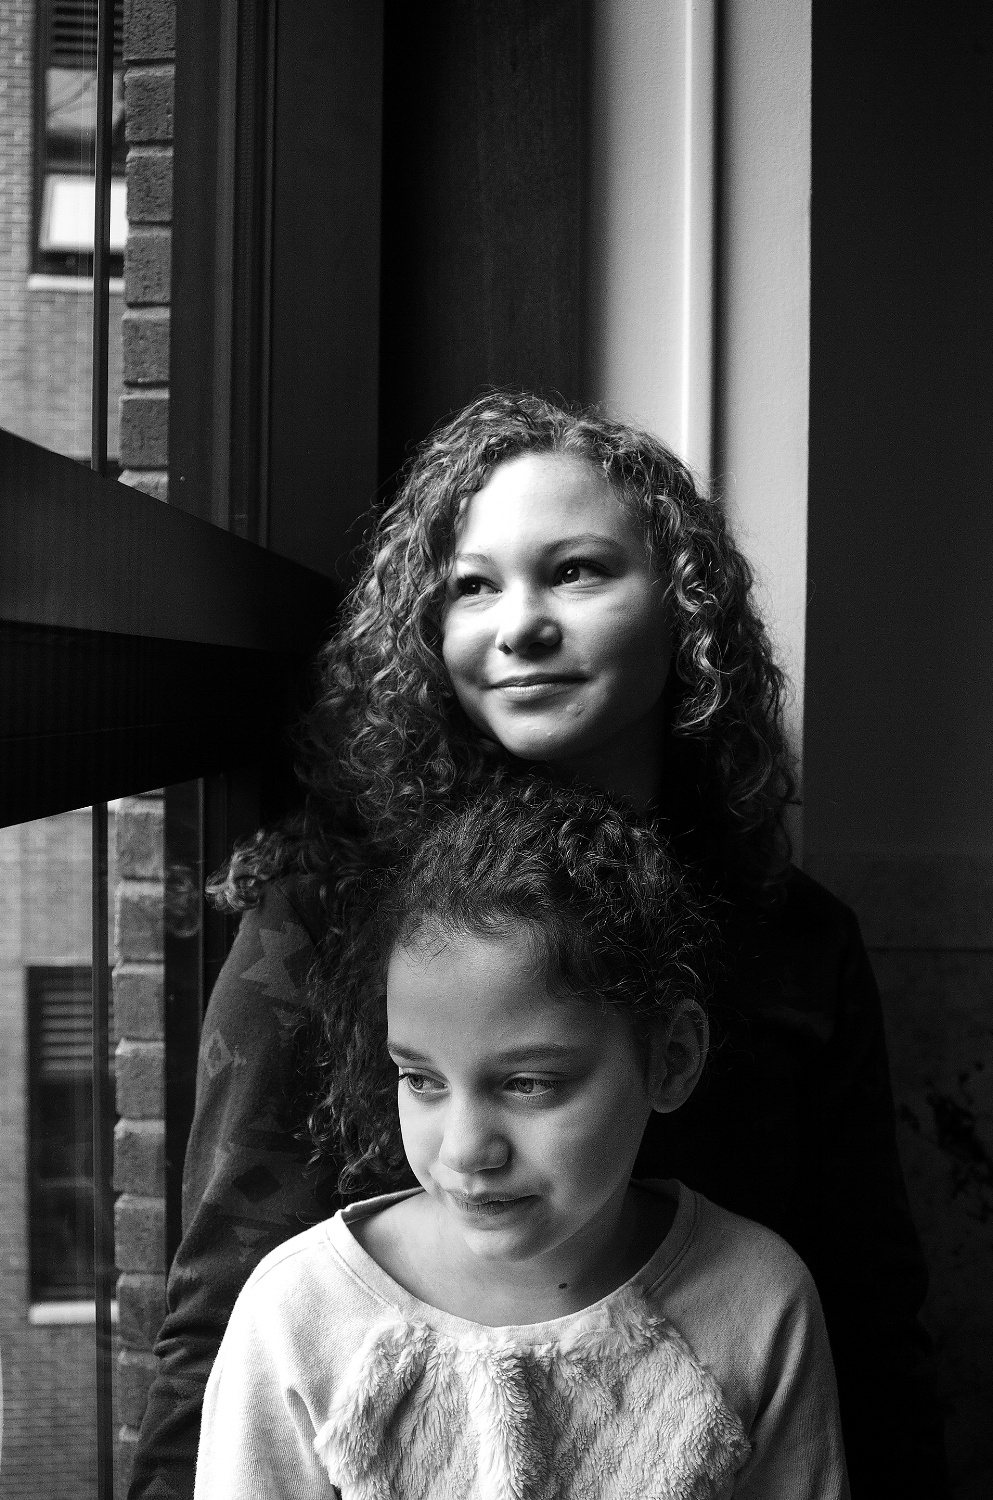 Arian and Laney Benavides, Guest Pages and daughters of Richard Benavides, Legislative Aide